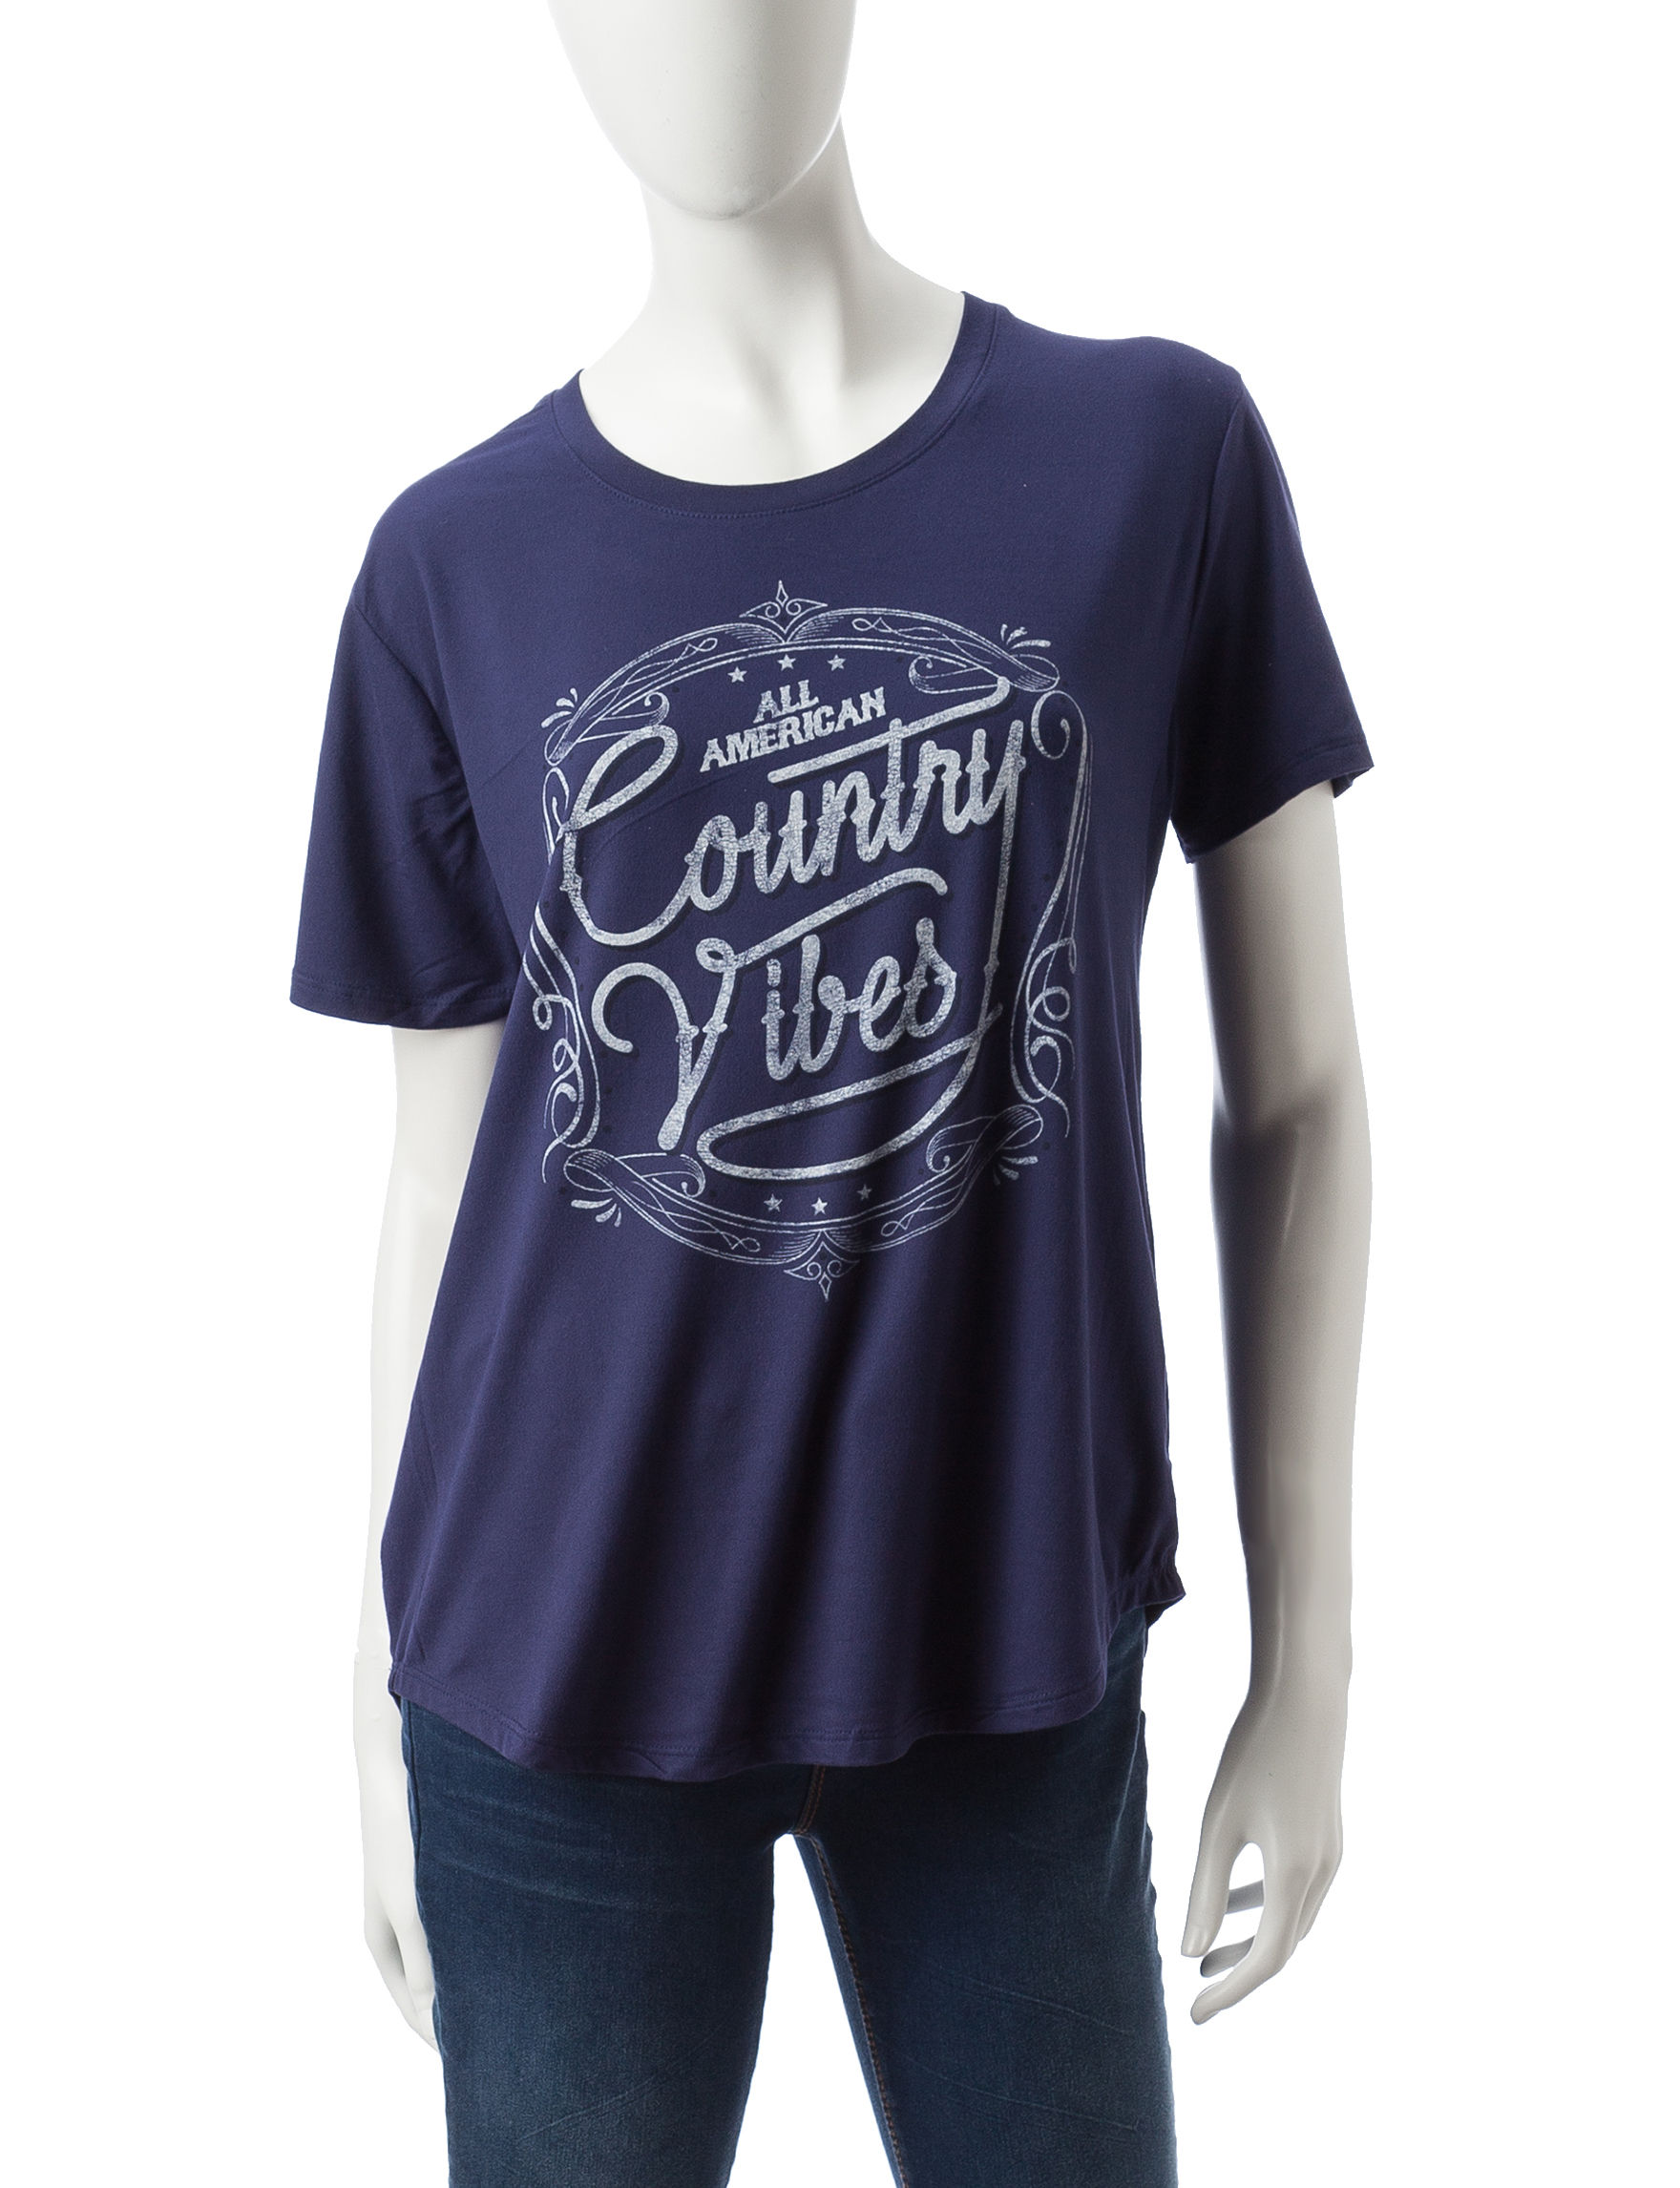 Cold Crush Navy Tees & Tanks